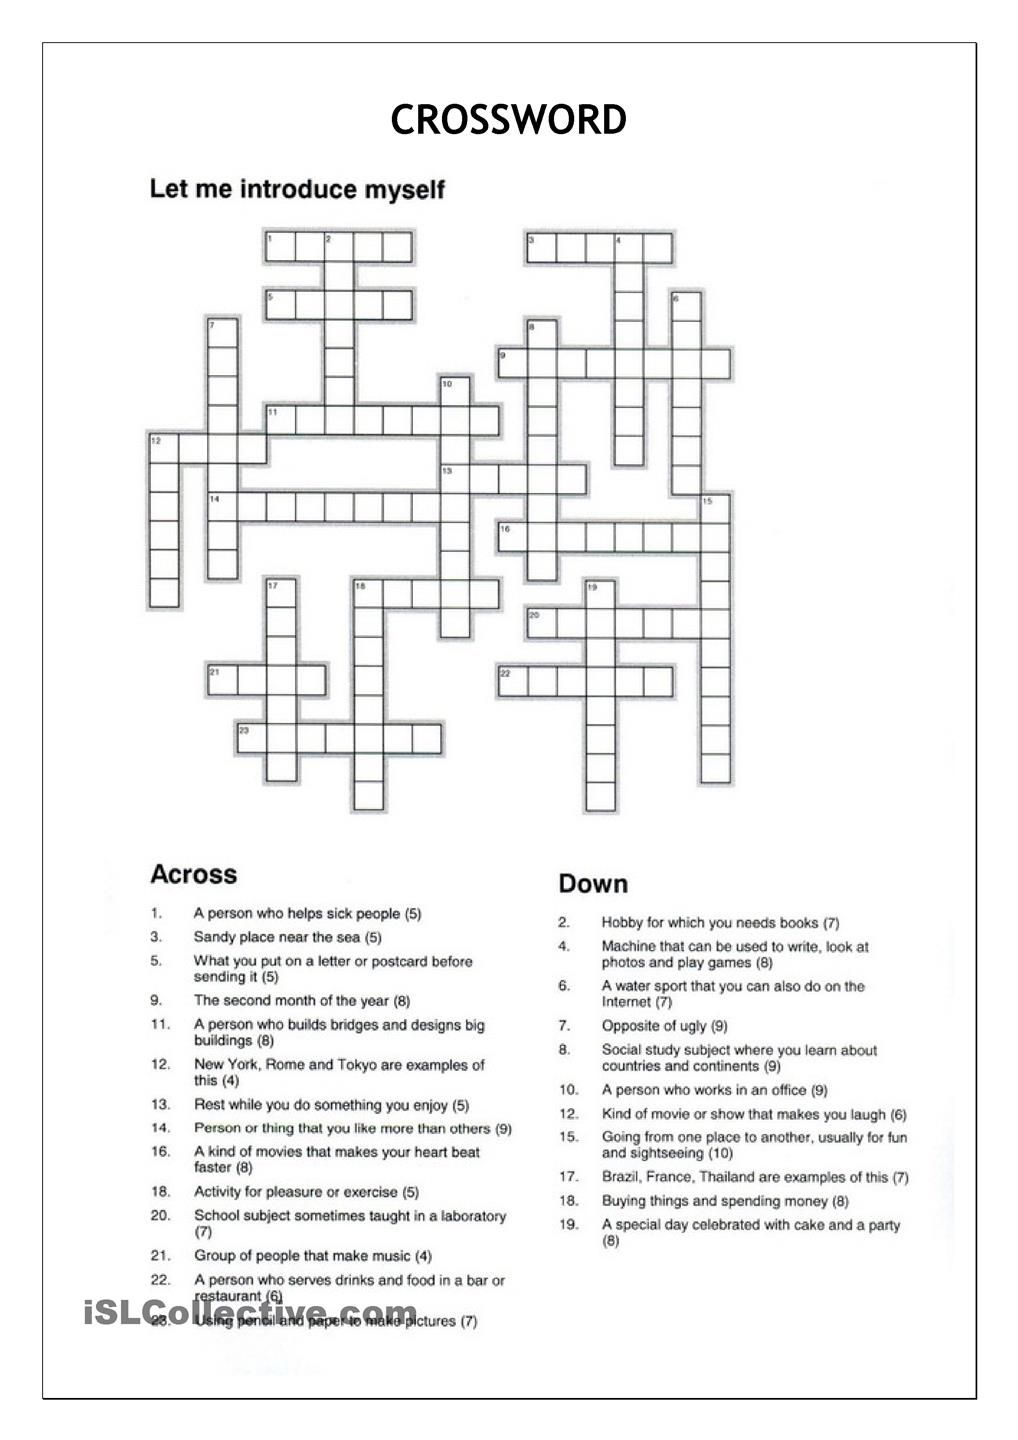 Crossword - Let Me Introduce Myself | Crosswords | Crossword - Printable Crossword Puzzles Spanish